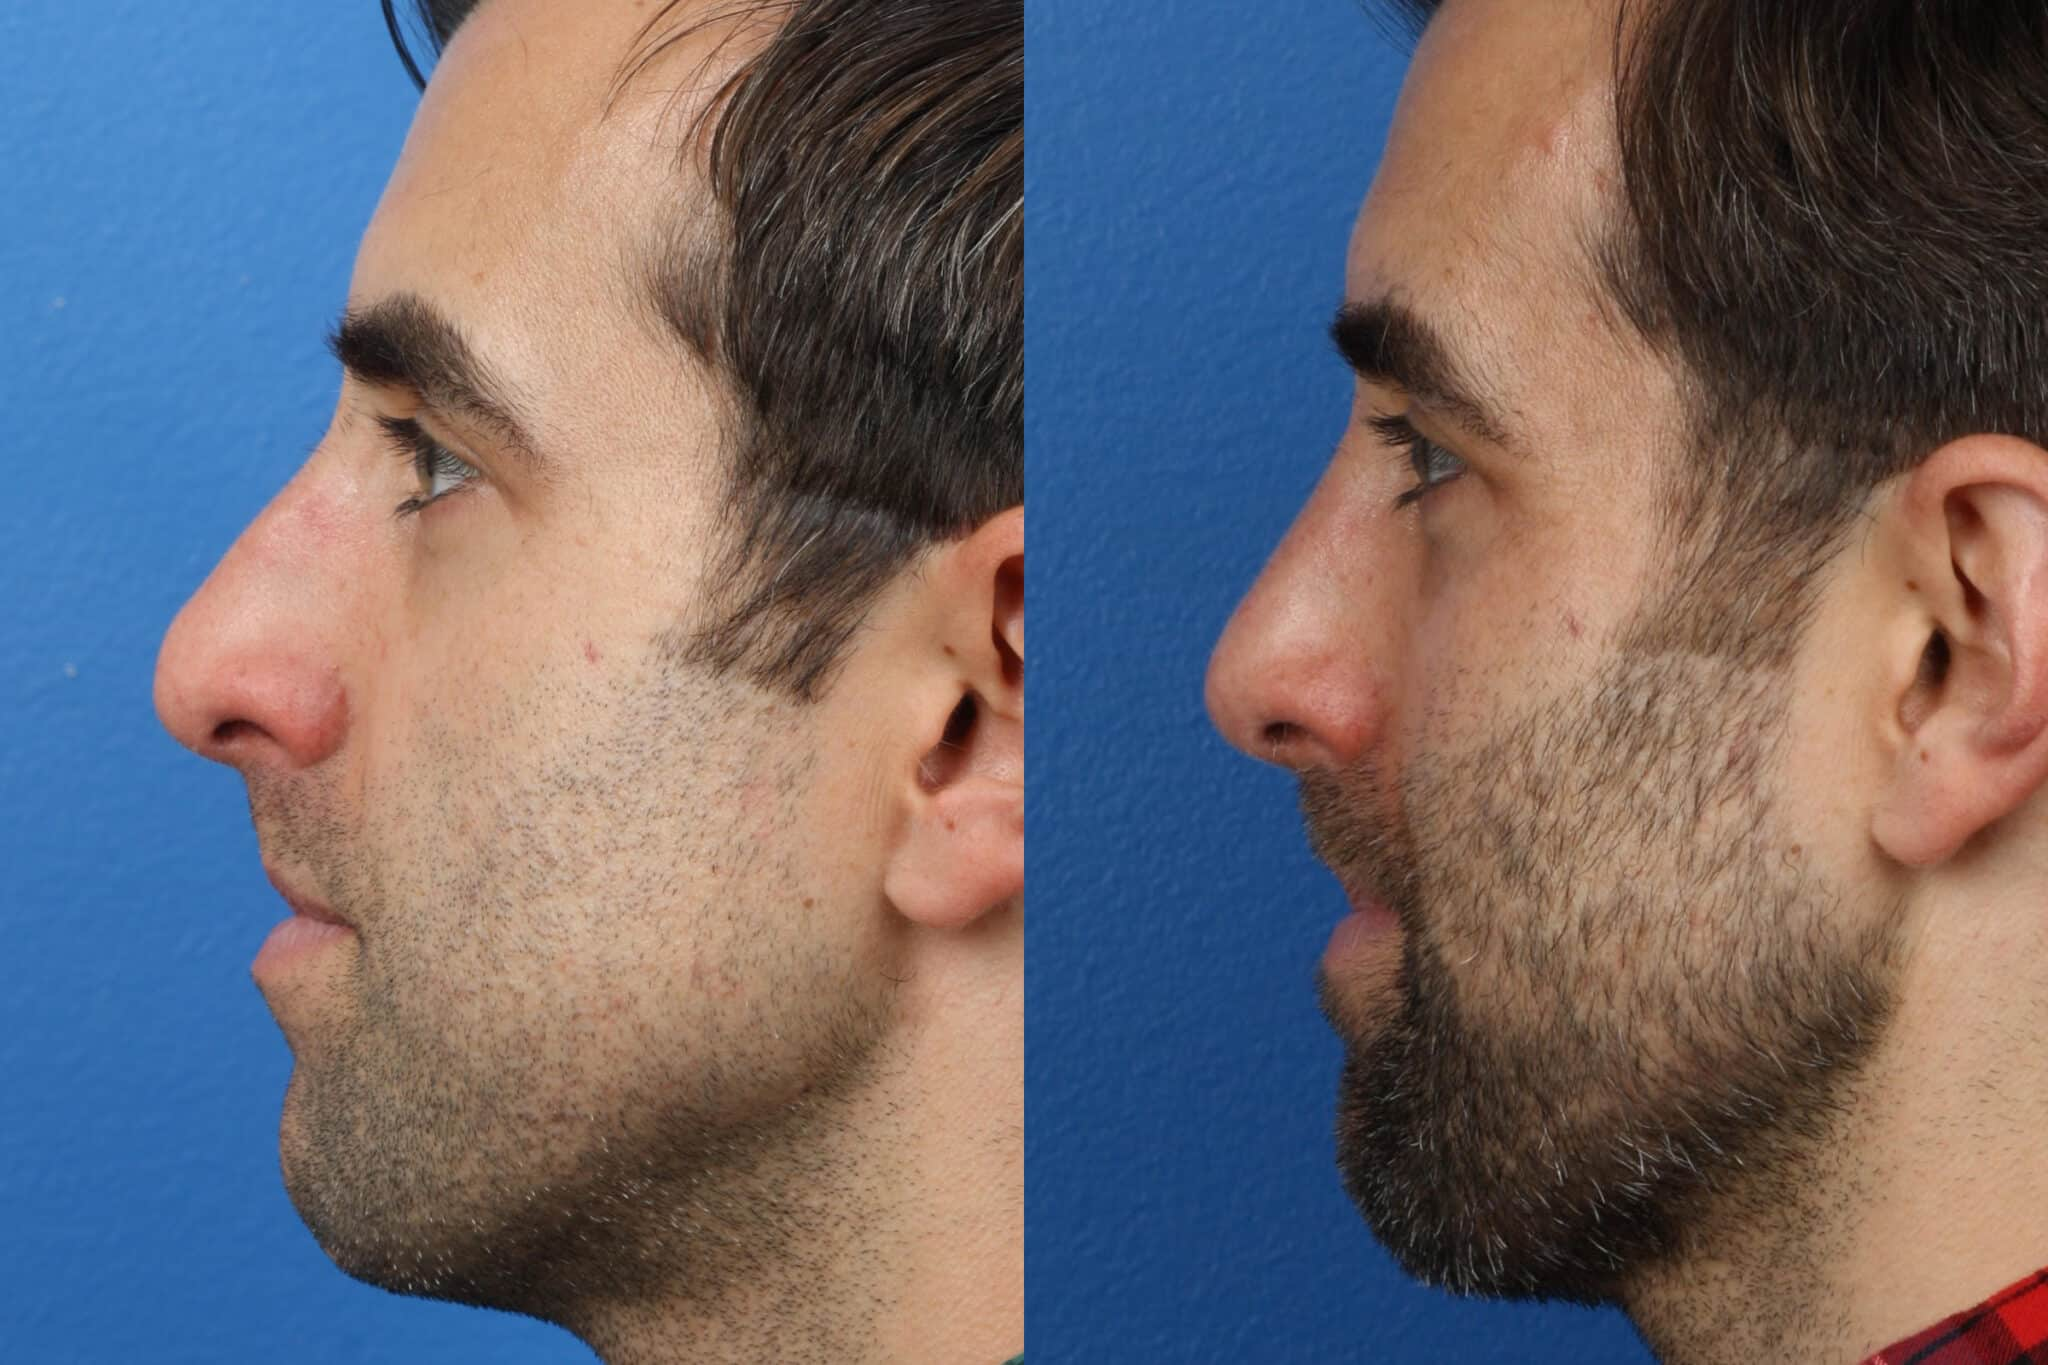 Rhinoplasty to Remove Bump from Nasal Bridge of a Male Patient by Dr. Miller